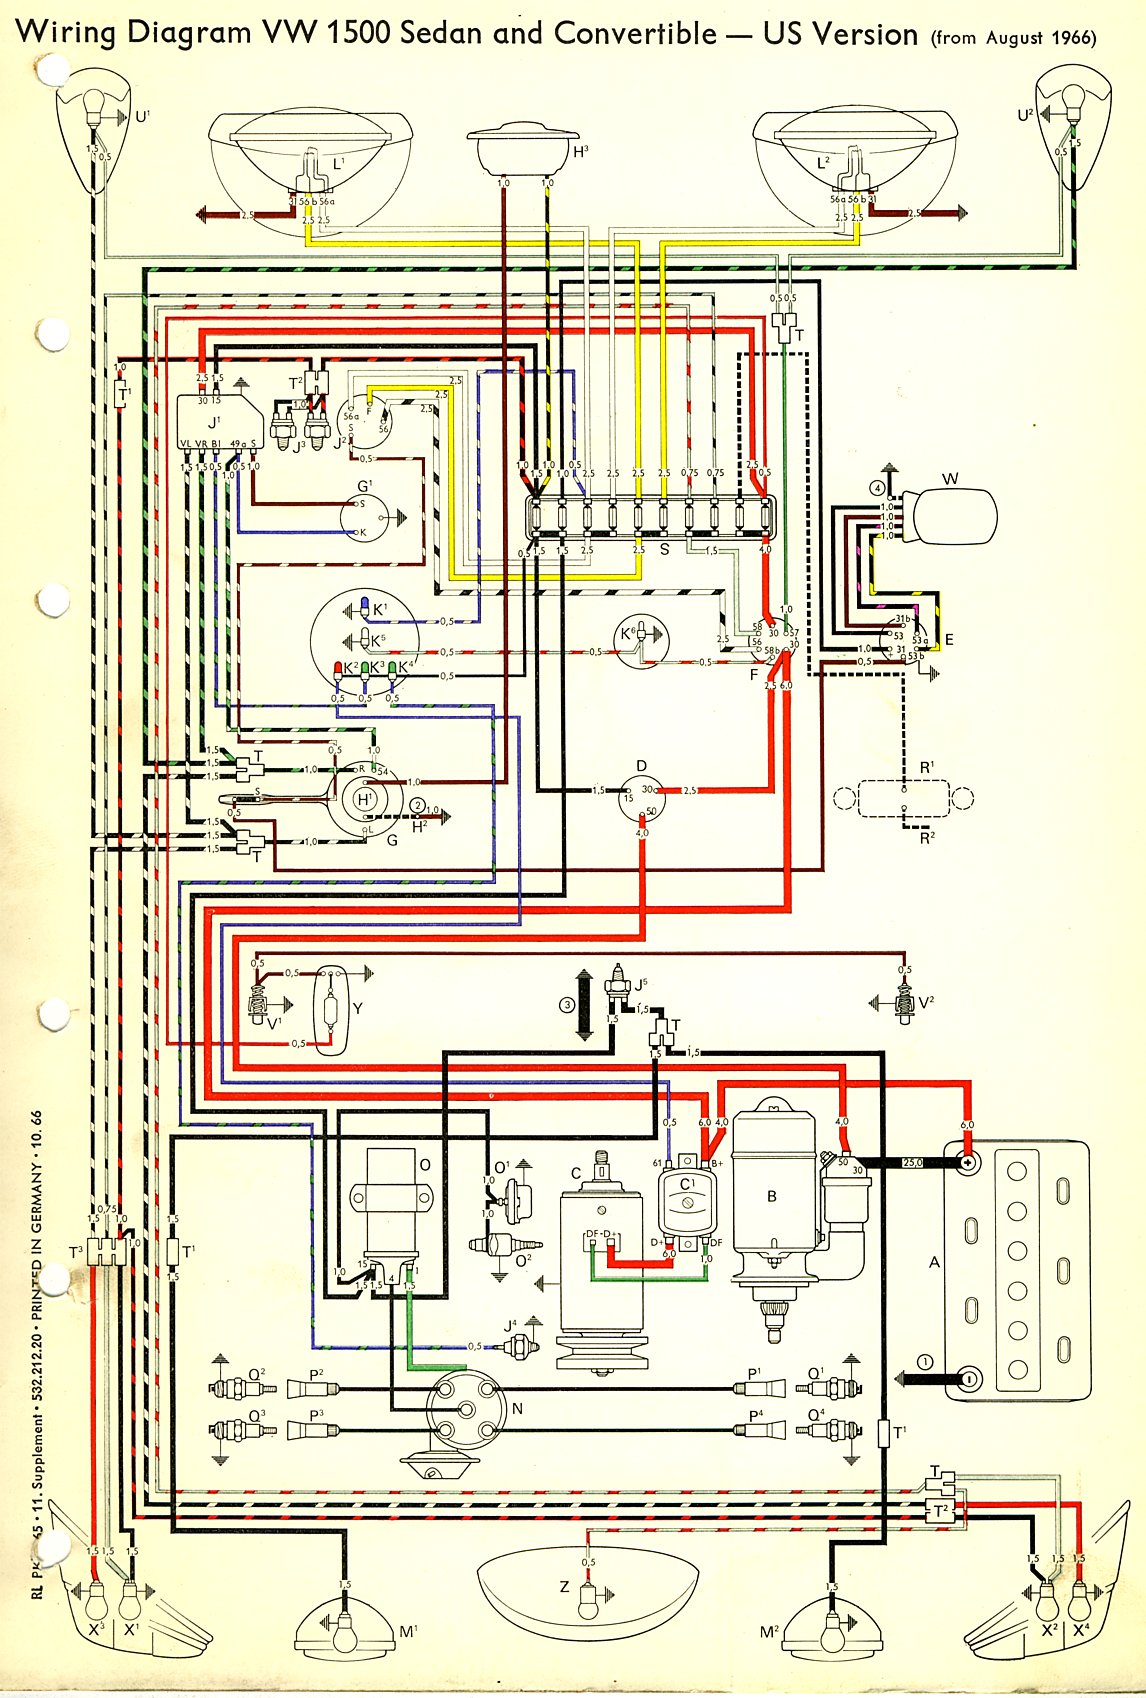 1971 Vw Beetle Wiring Diagram Reveolution Of Peugeot 306 Fuse Box Manual Thesamba Com Type 1 Diagrams Rh